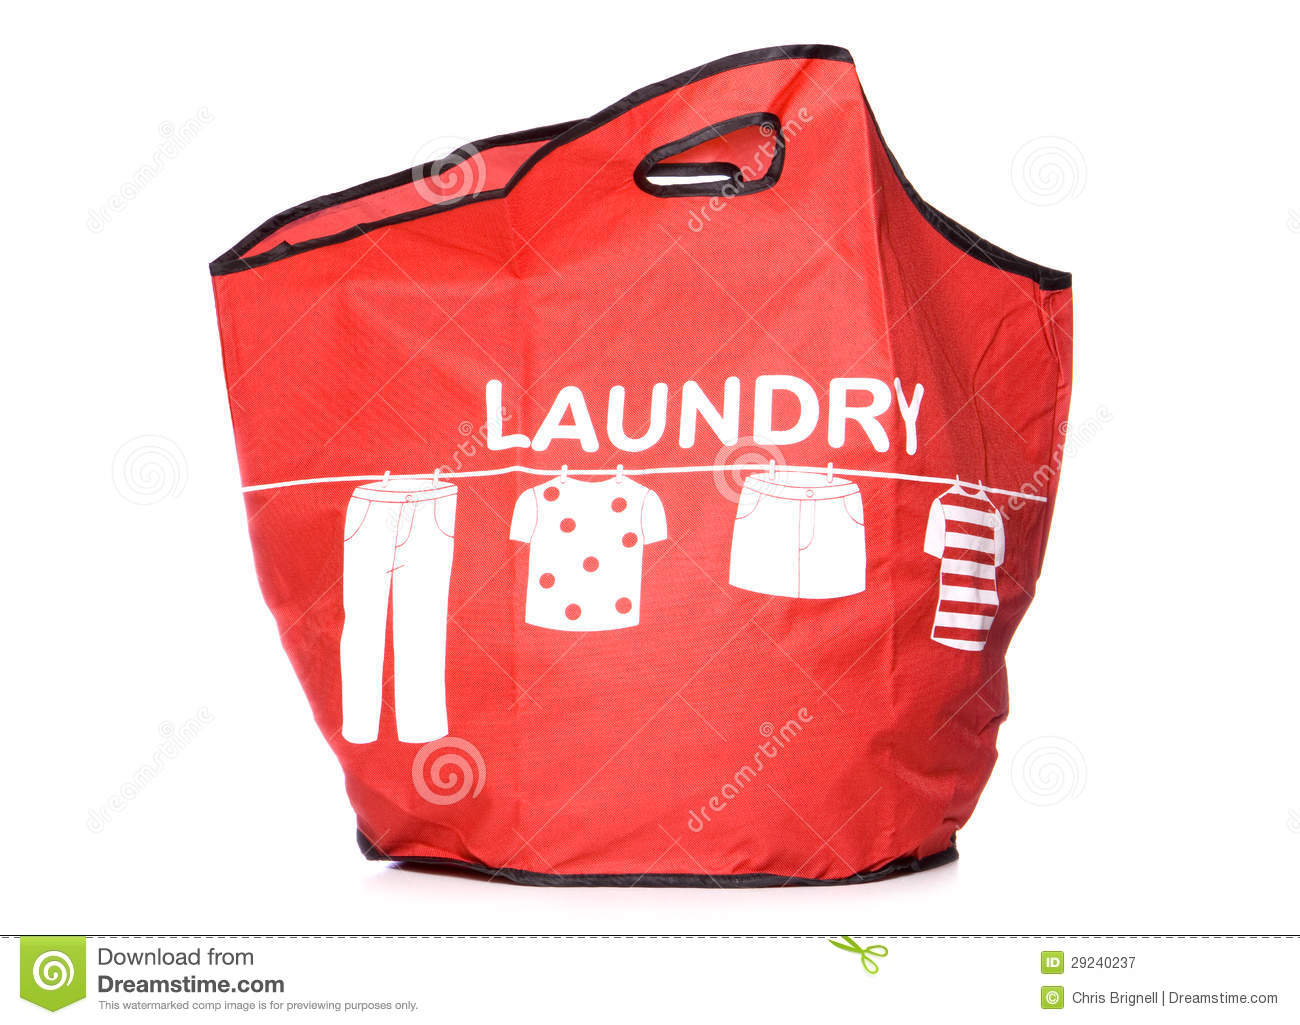 Carry Laundry Bag Red Laundry Carry Bag Cut Out Royalty Free Stock